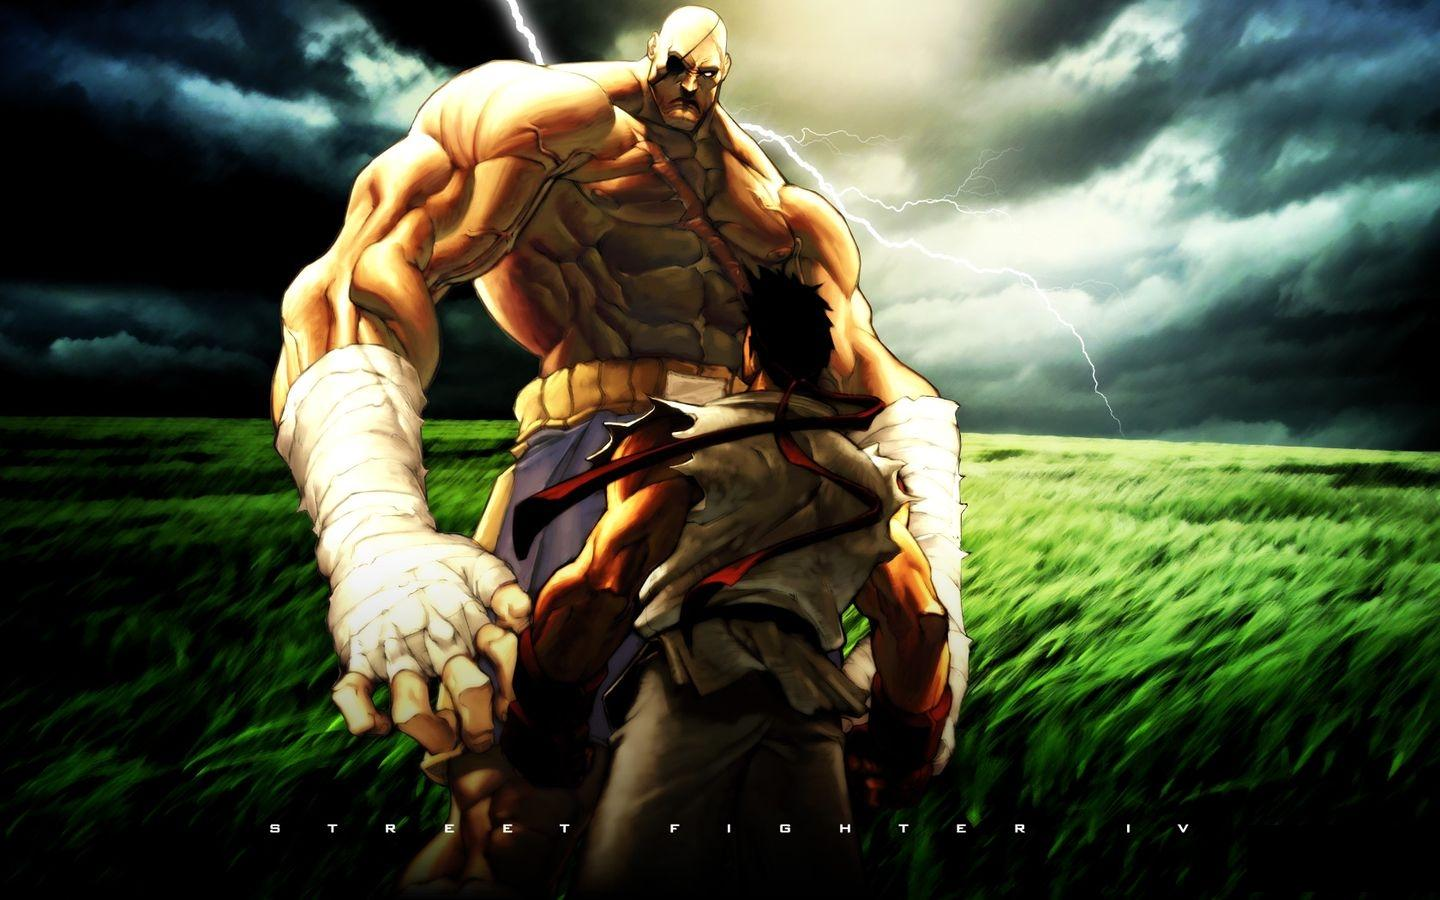 Background image vs img - Street Fighter 4 Sagot Vs Ryu Wallpaper Background Capcom Fighting Game Img Image Picture Pic